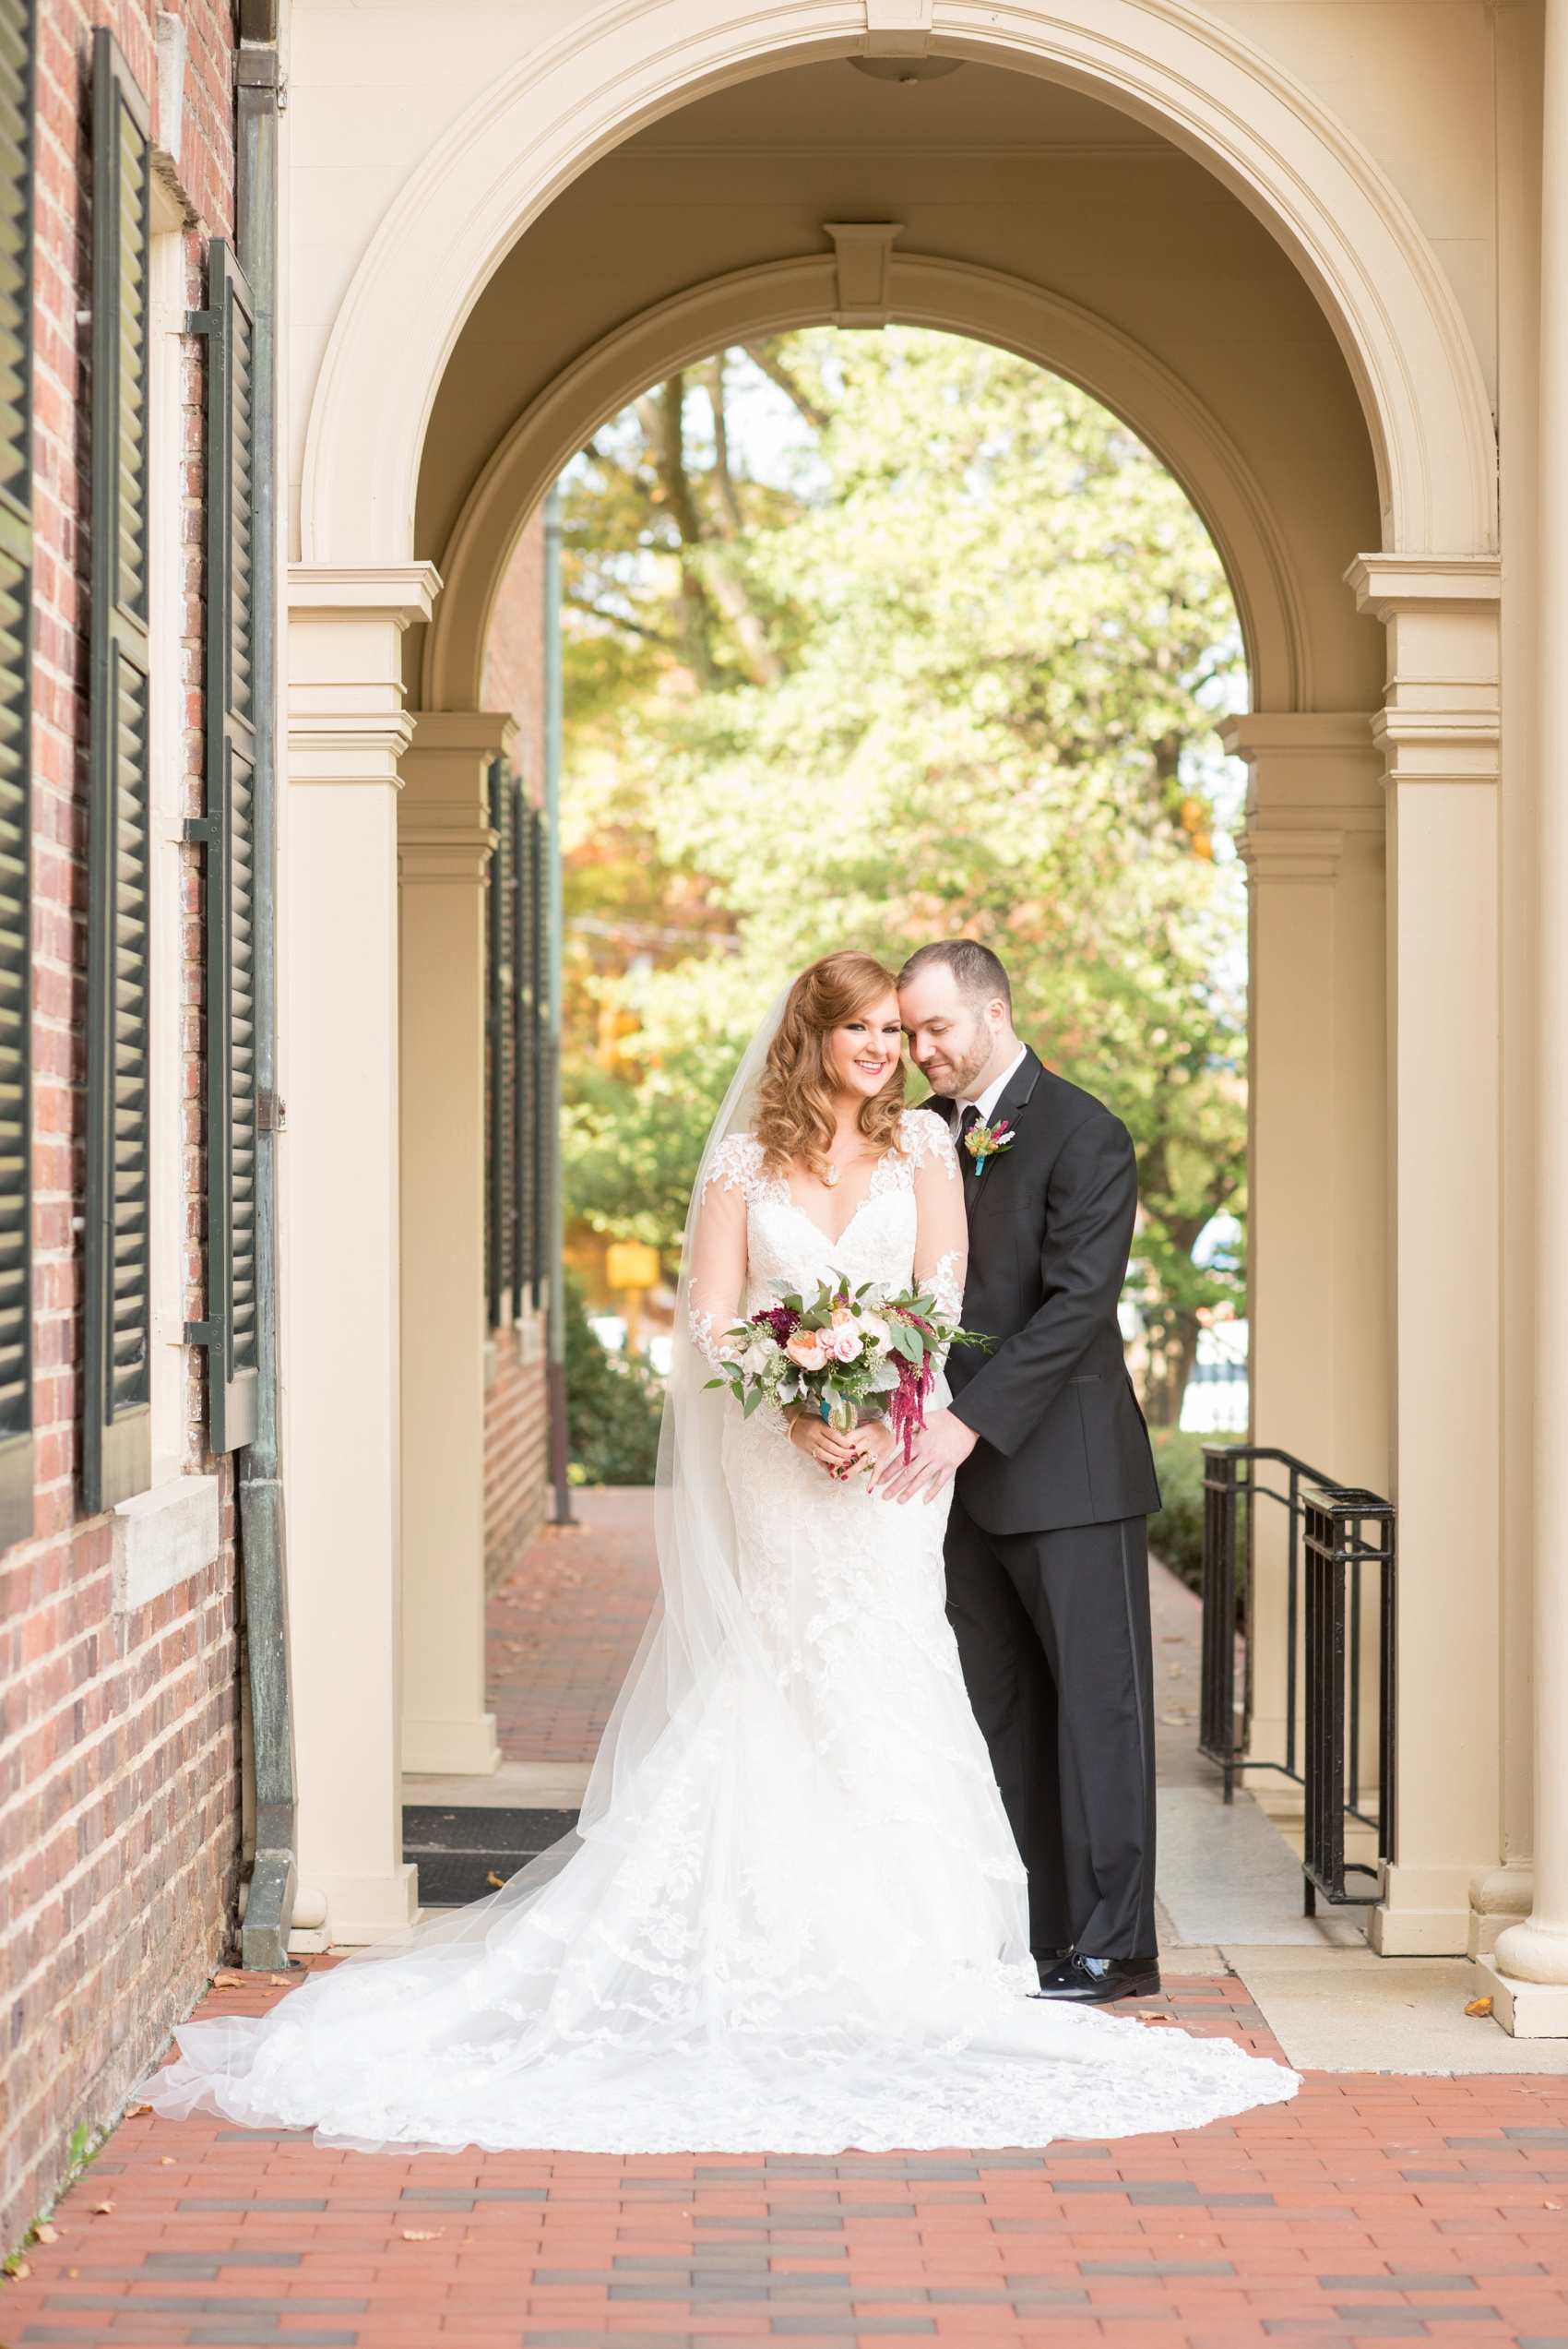 The Carolina Inn wedding photos by Mikkel Paige Photography, Raleigh wedding photographer. Planning by A Swanky Affair and flowers by Tre Bella for a vintage bride look.